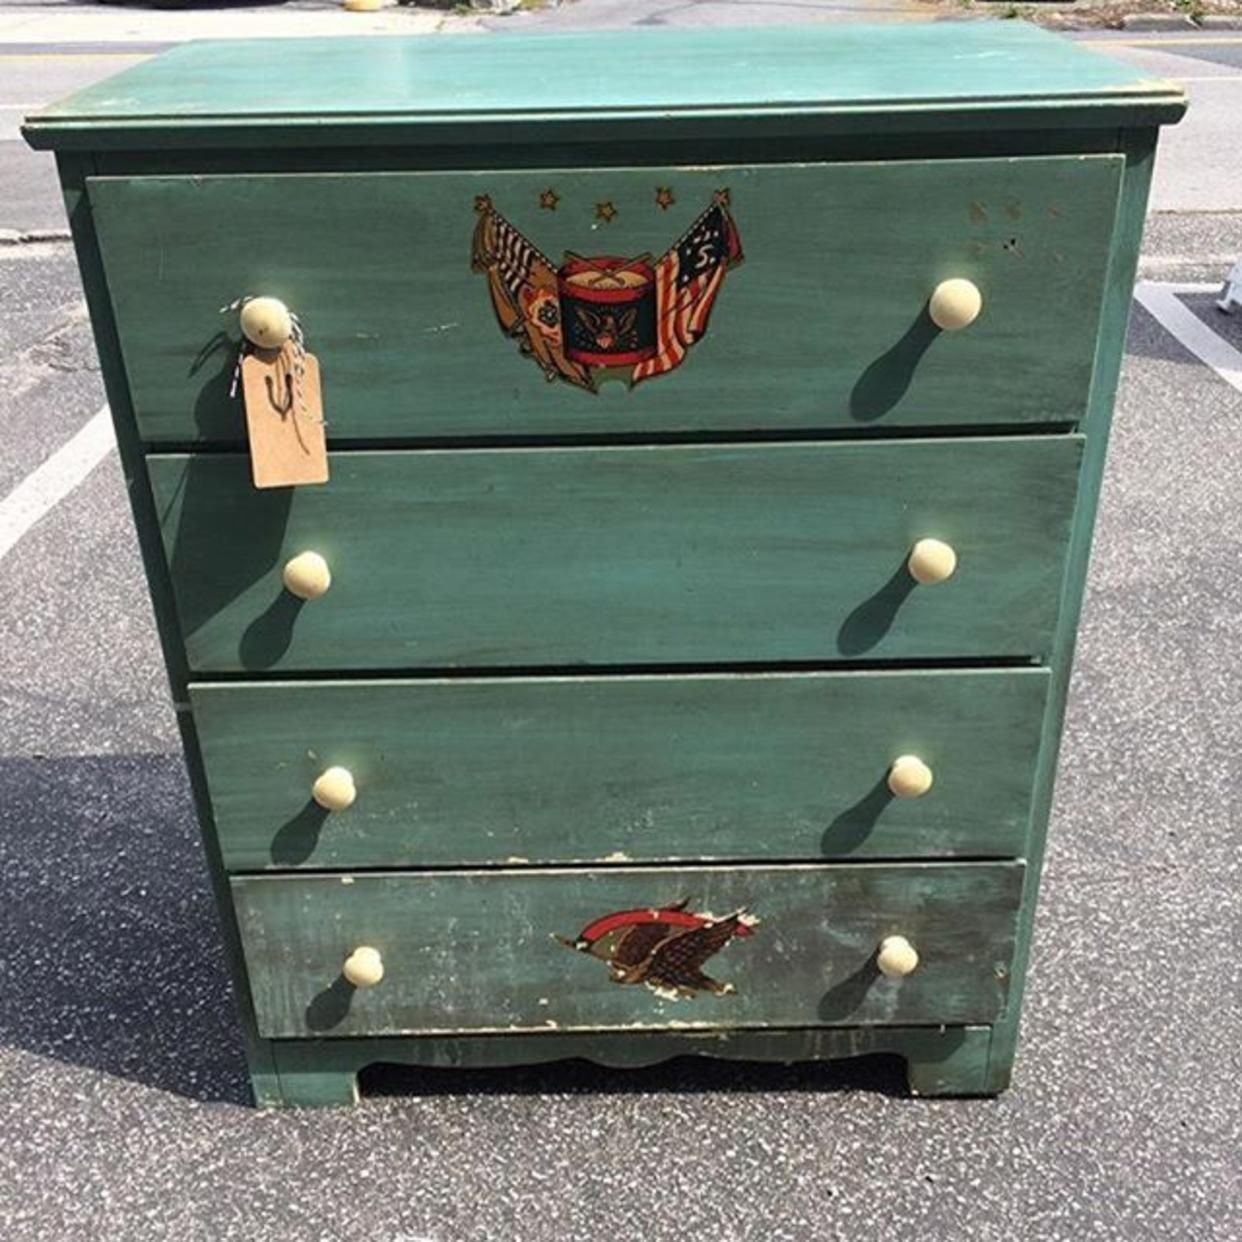 Painted Chest O Drawer Manufactured By Child Craft 150 From Wishbone Reserve Of Baltimore Md Attic Painted Chest Vintage Furniture Crafts For Kids